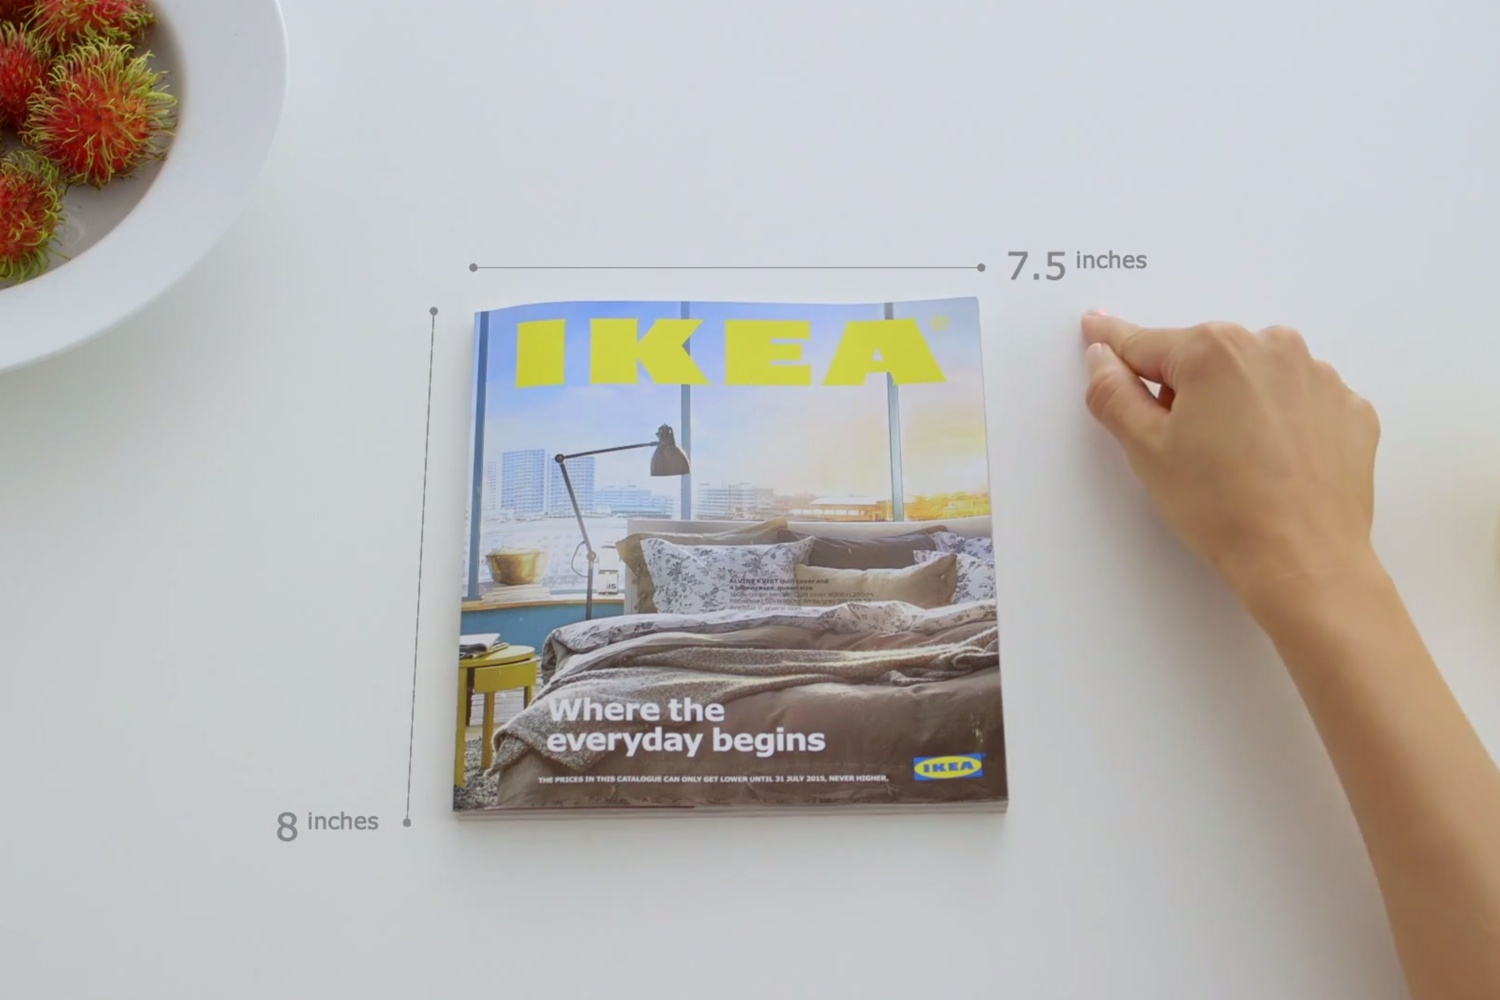 Ikea Trolls Apple In Hilarious New Ad